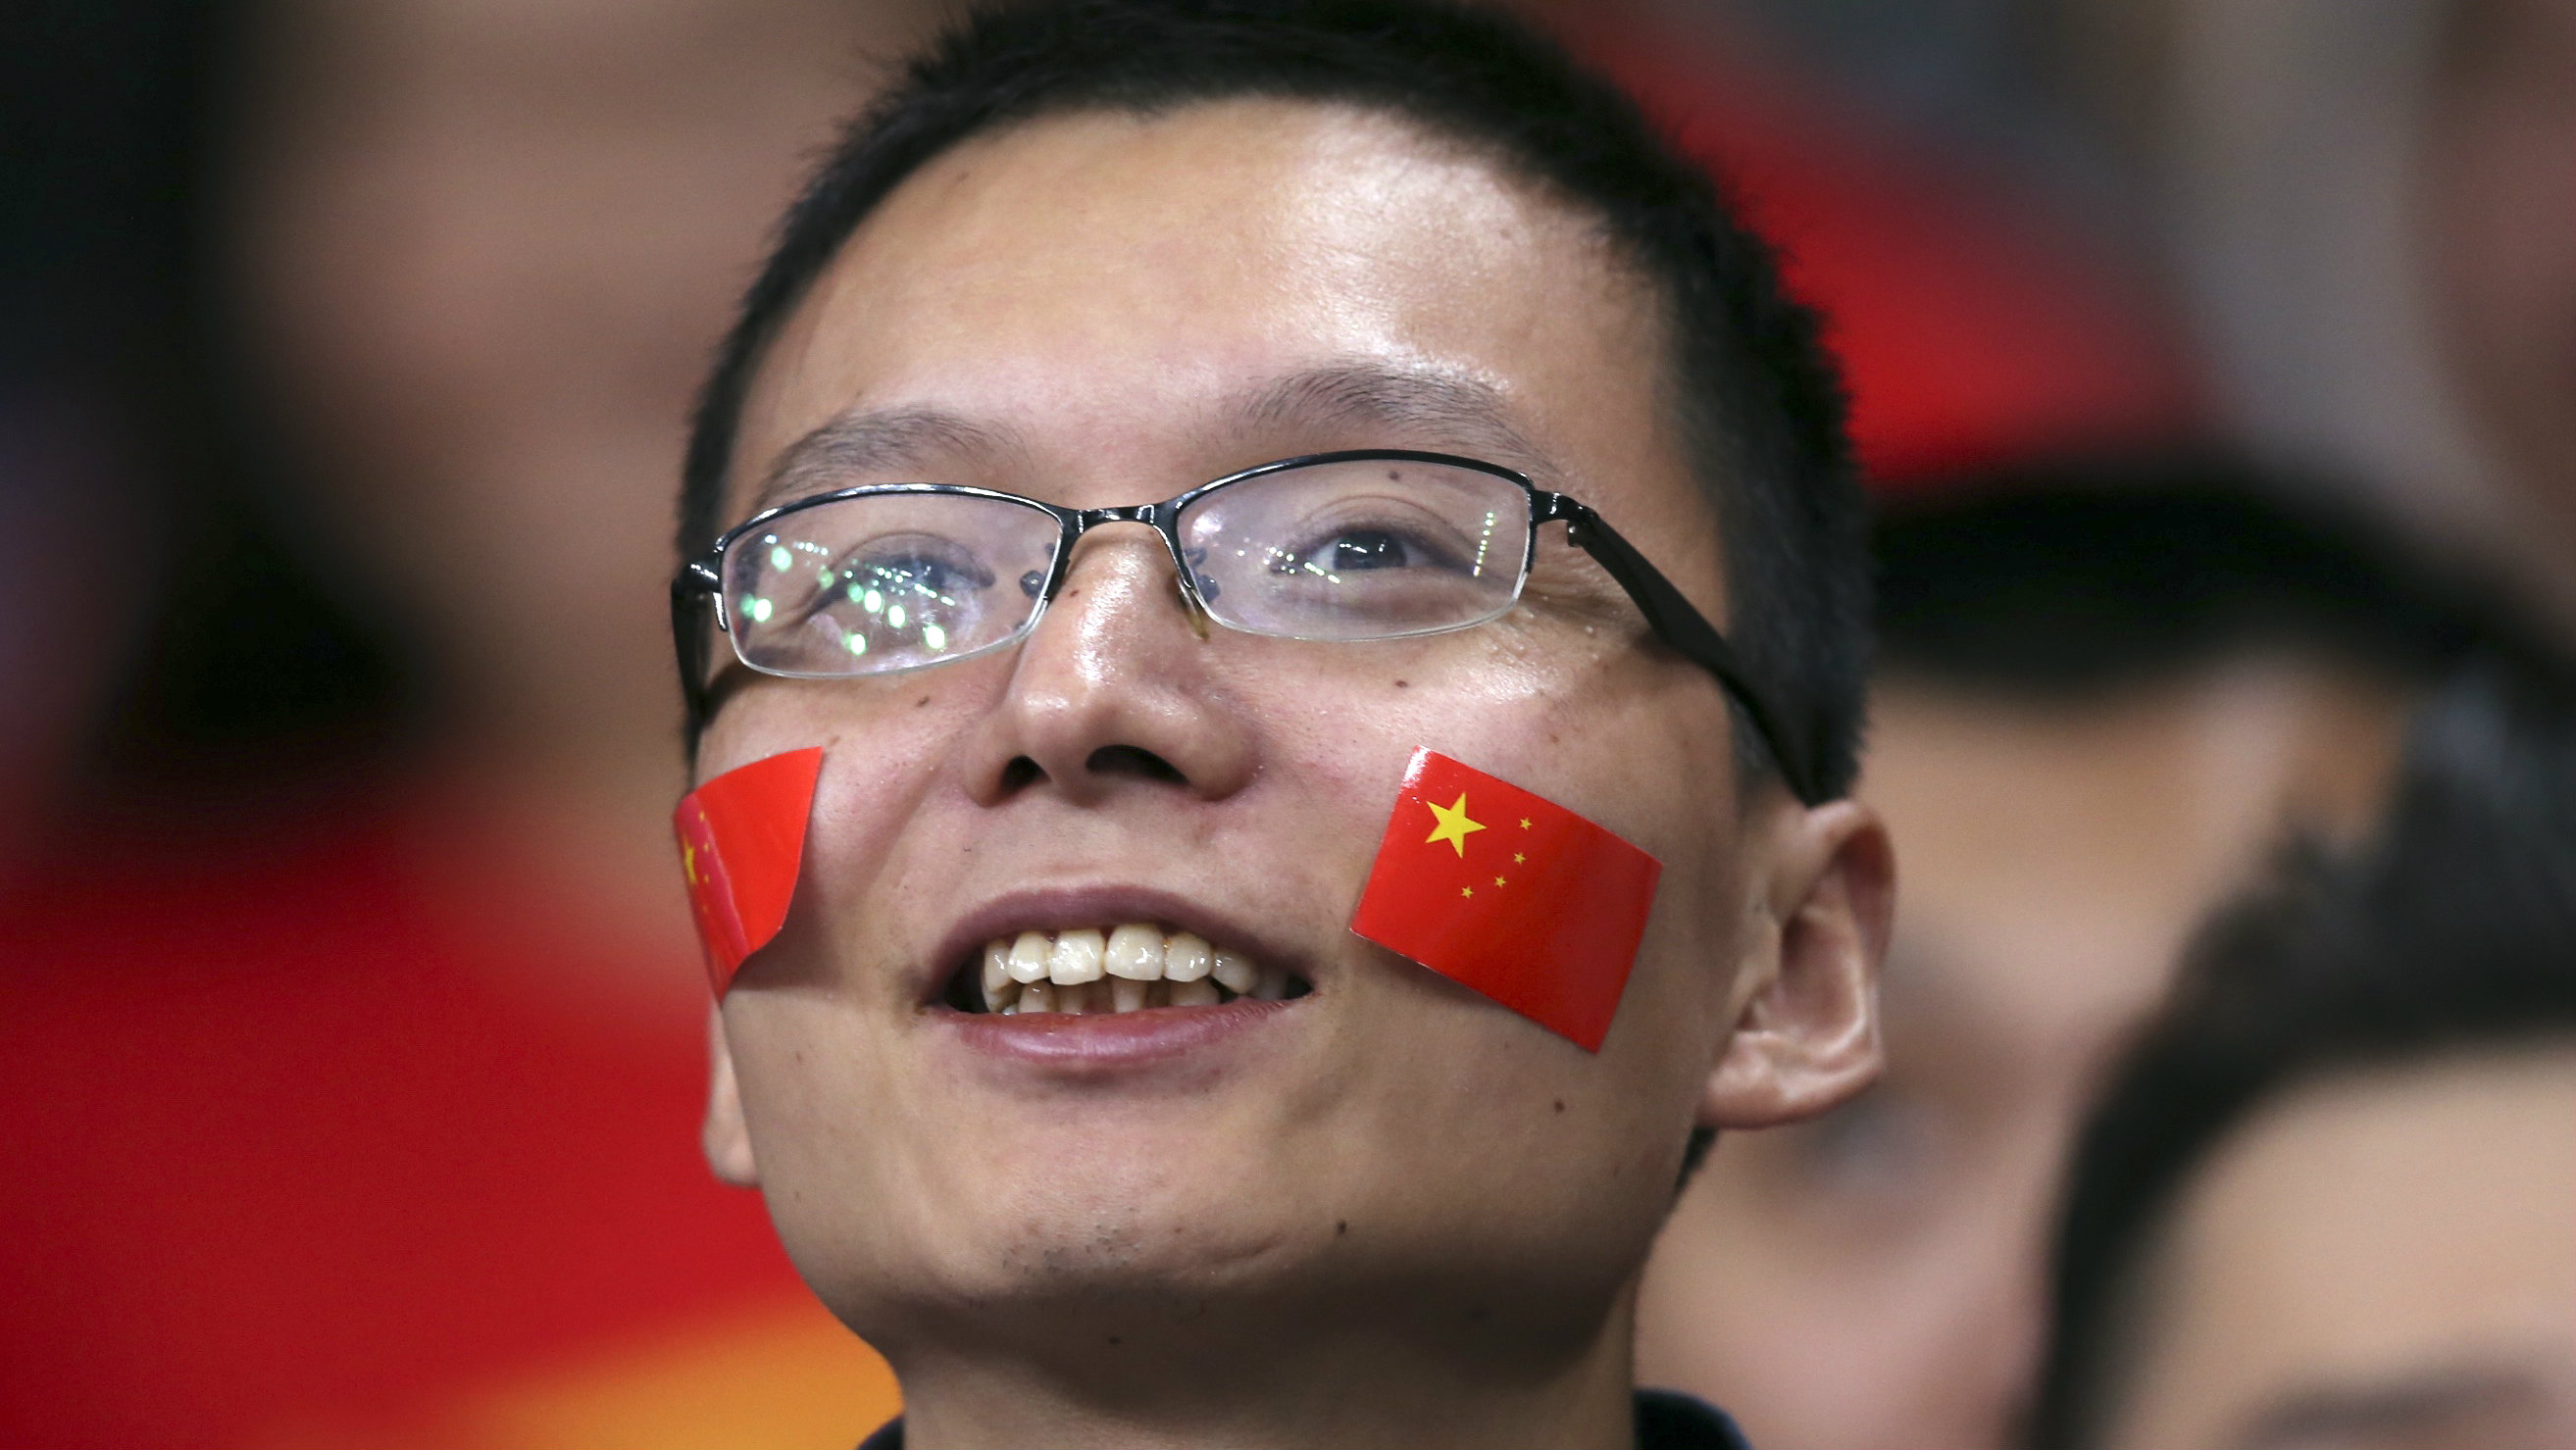 A man with Chinese national flags stuck to his cheeks smiles during their women's Group B volleyball match against Serbia at the London 2012 Olympic Games at Earls Court in London July 28, 2012.